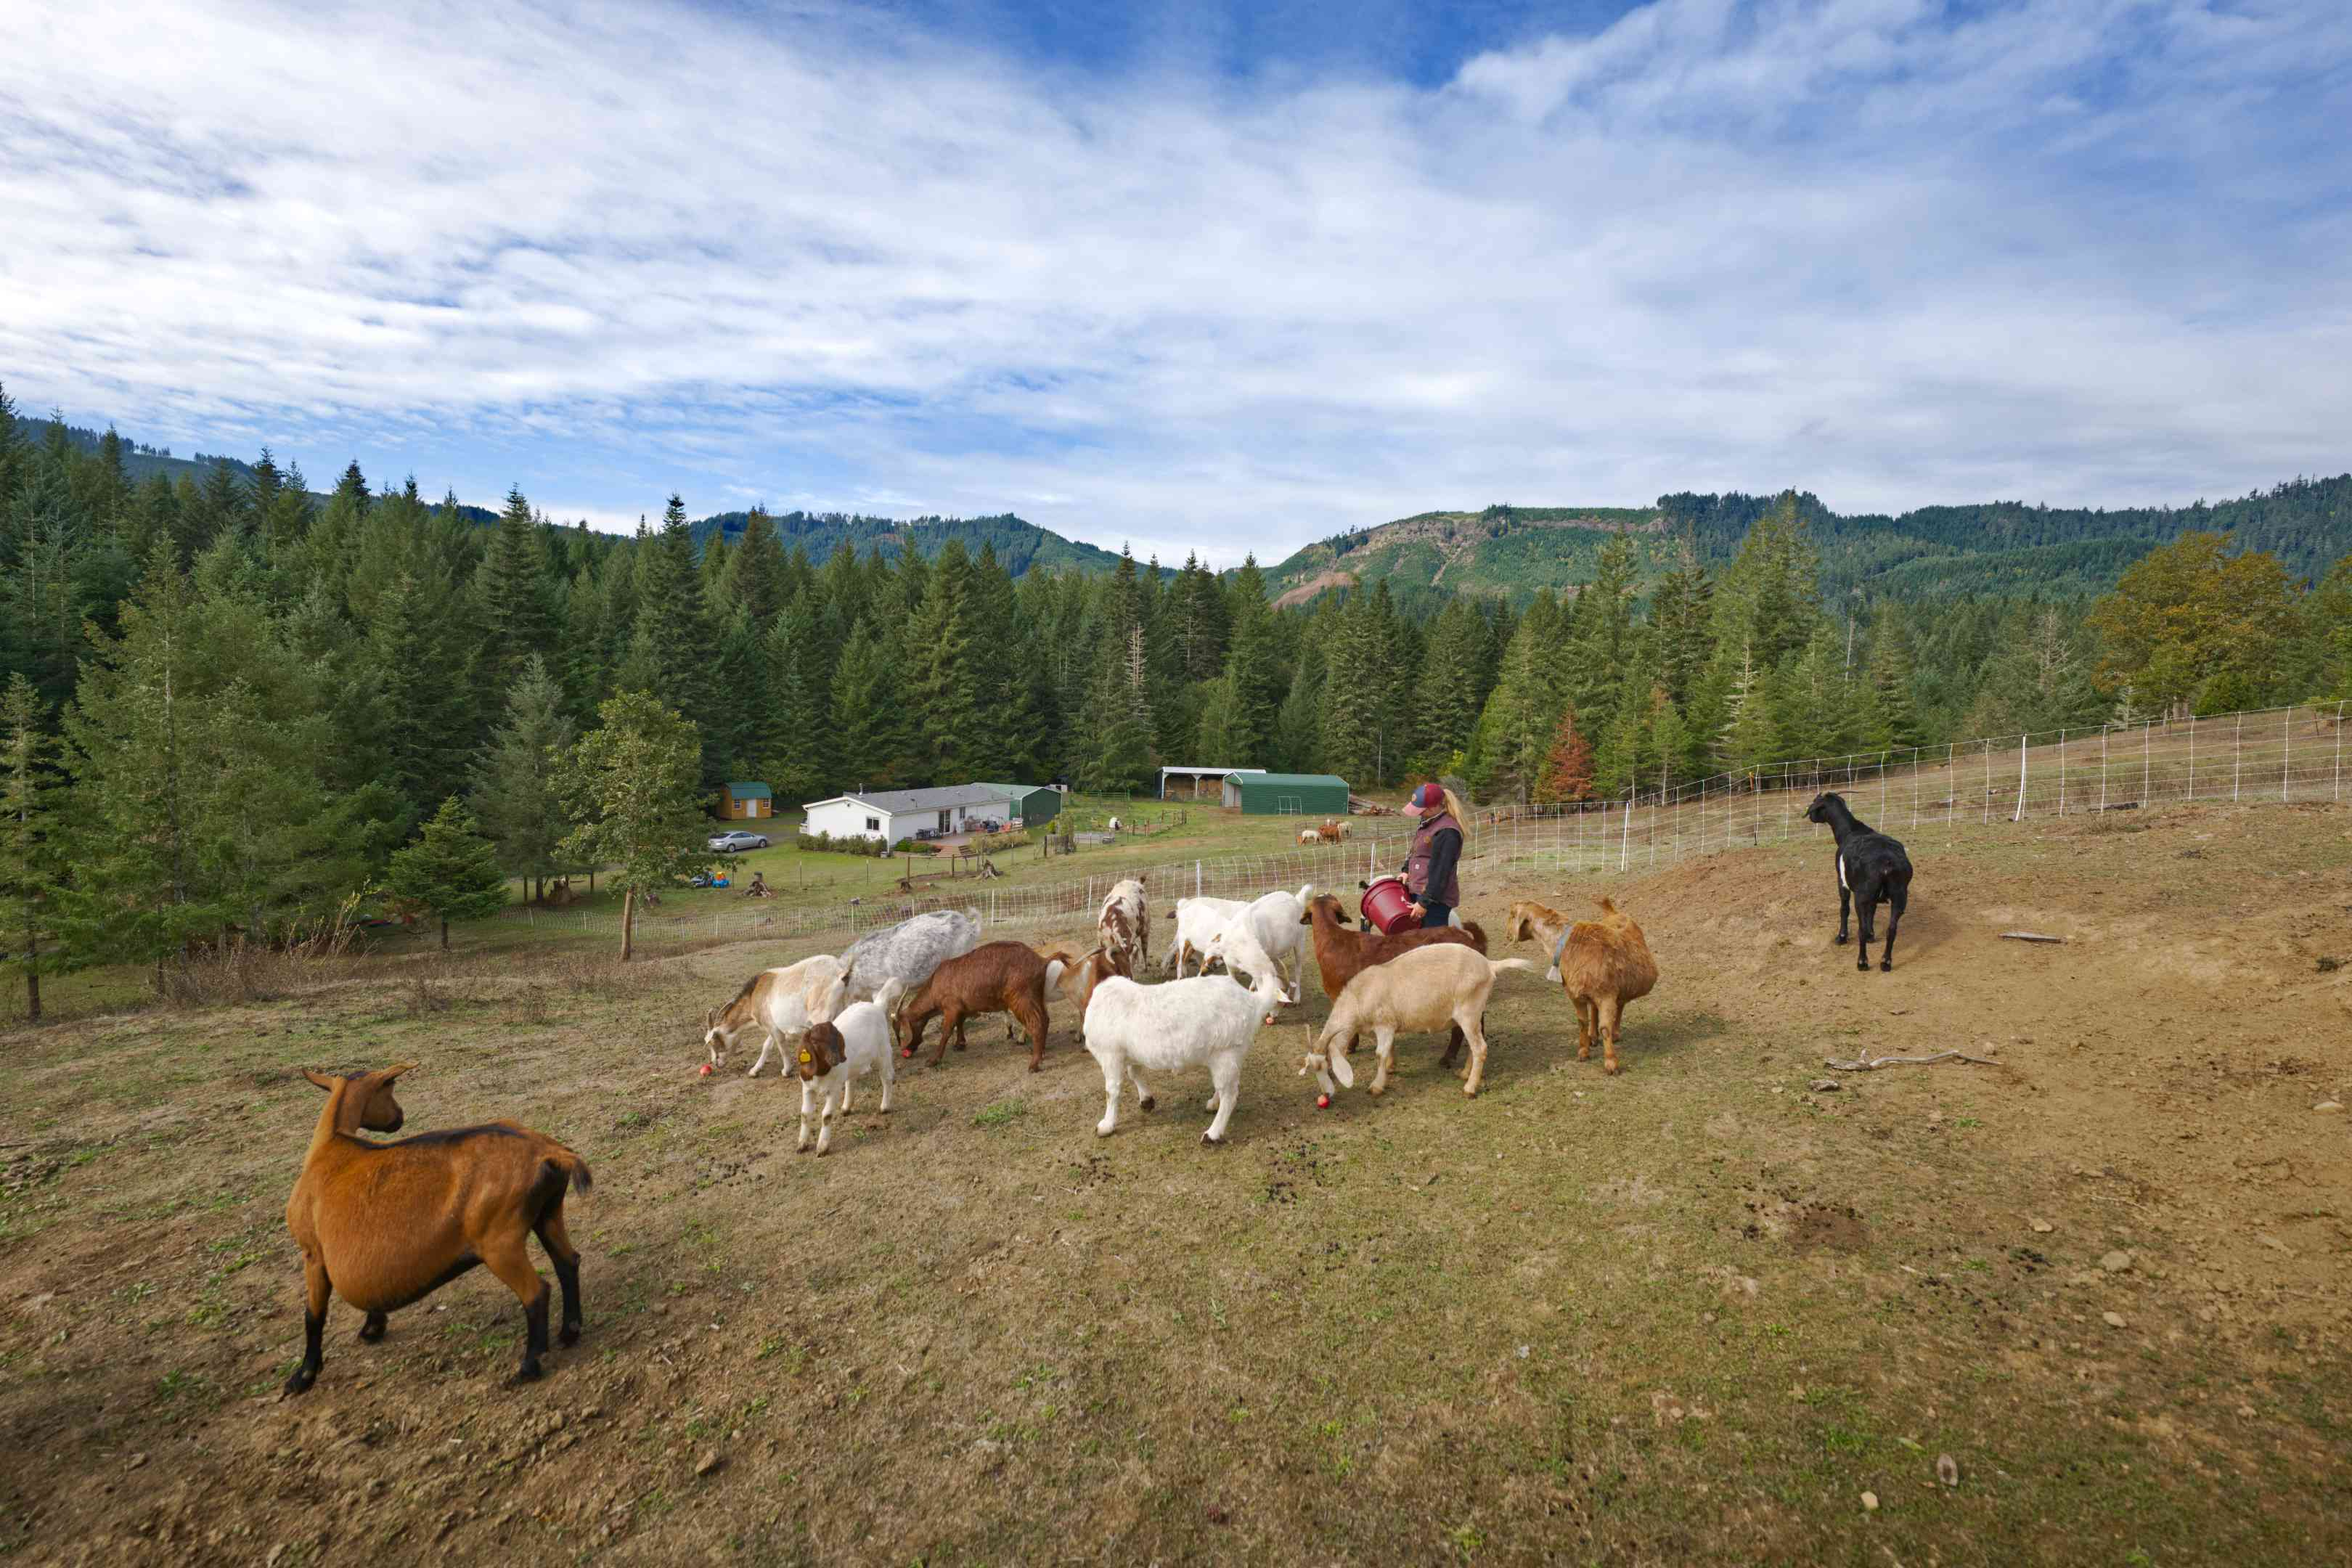 large goat pasture with variety of goats with Oregon mountains in background